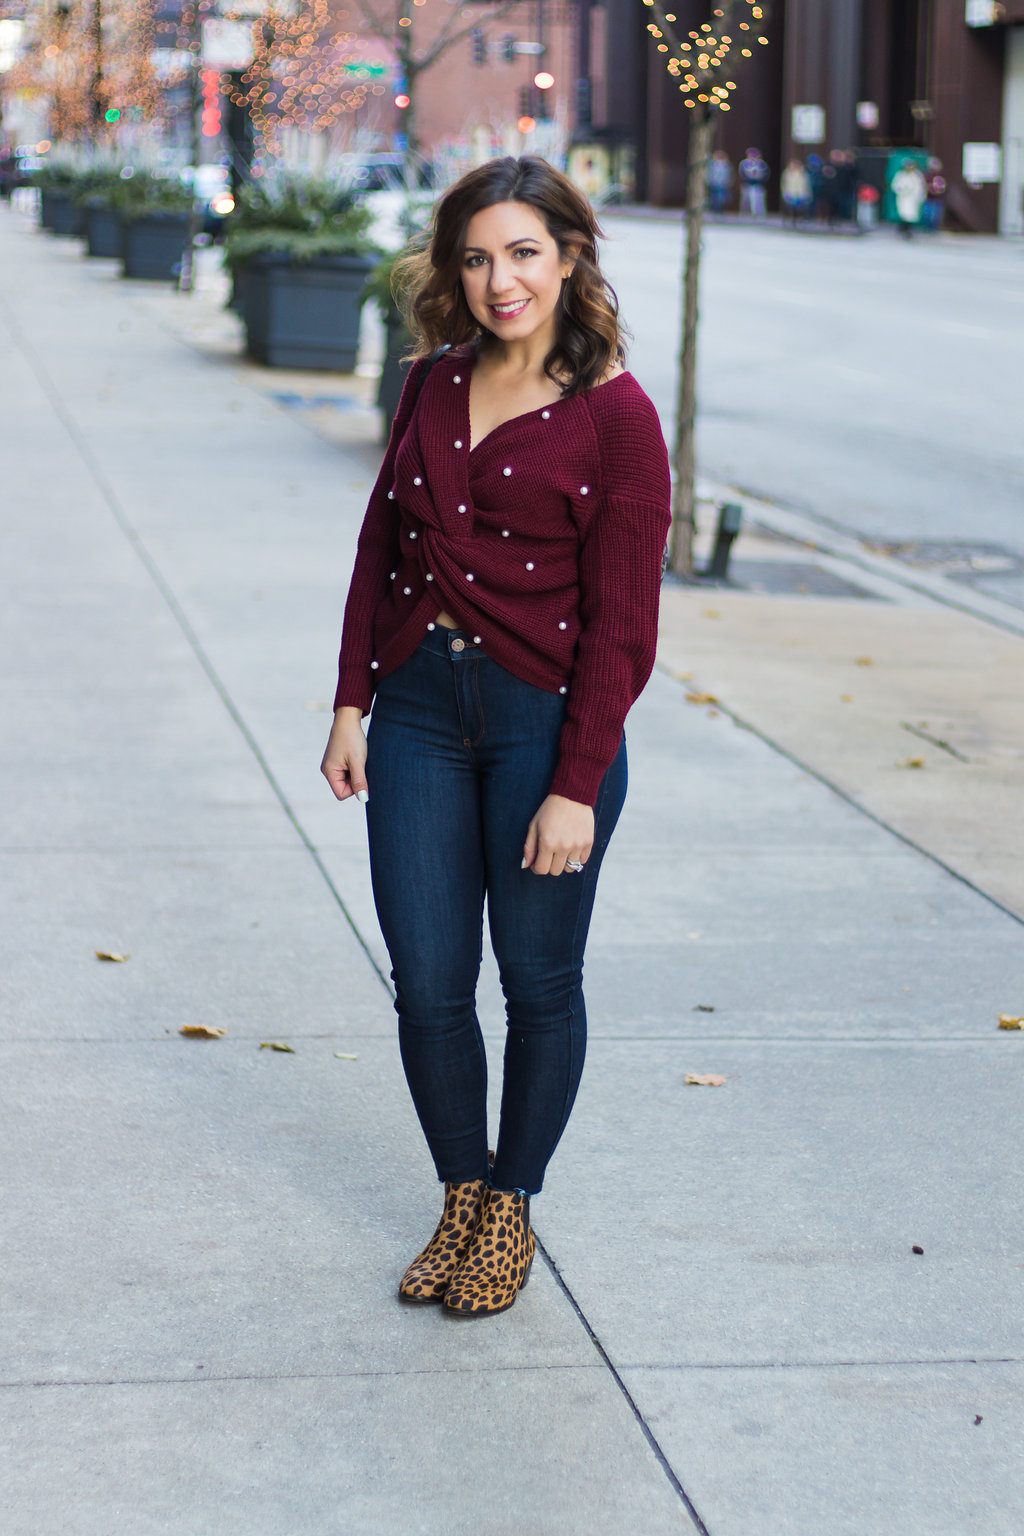 Lifestyle blogger Roxanne of Glass of Glam wearing a pearl burgundy sweater, green military jacket, Mott + Bow denim, and leopard booties